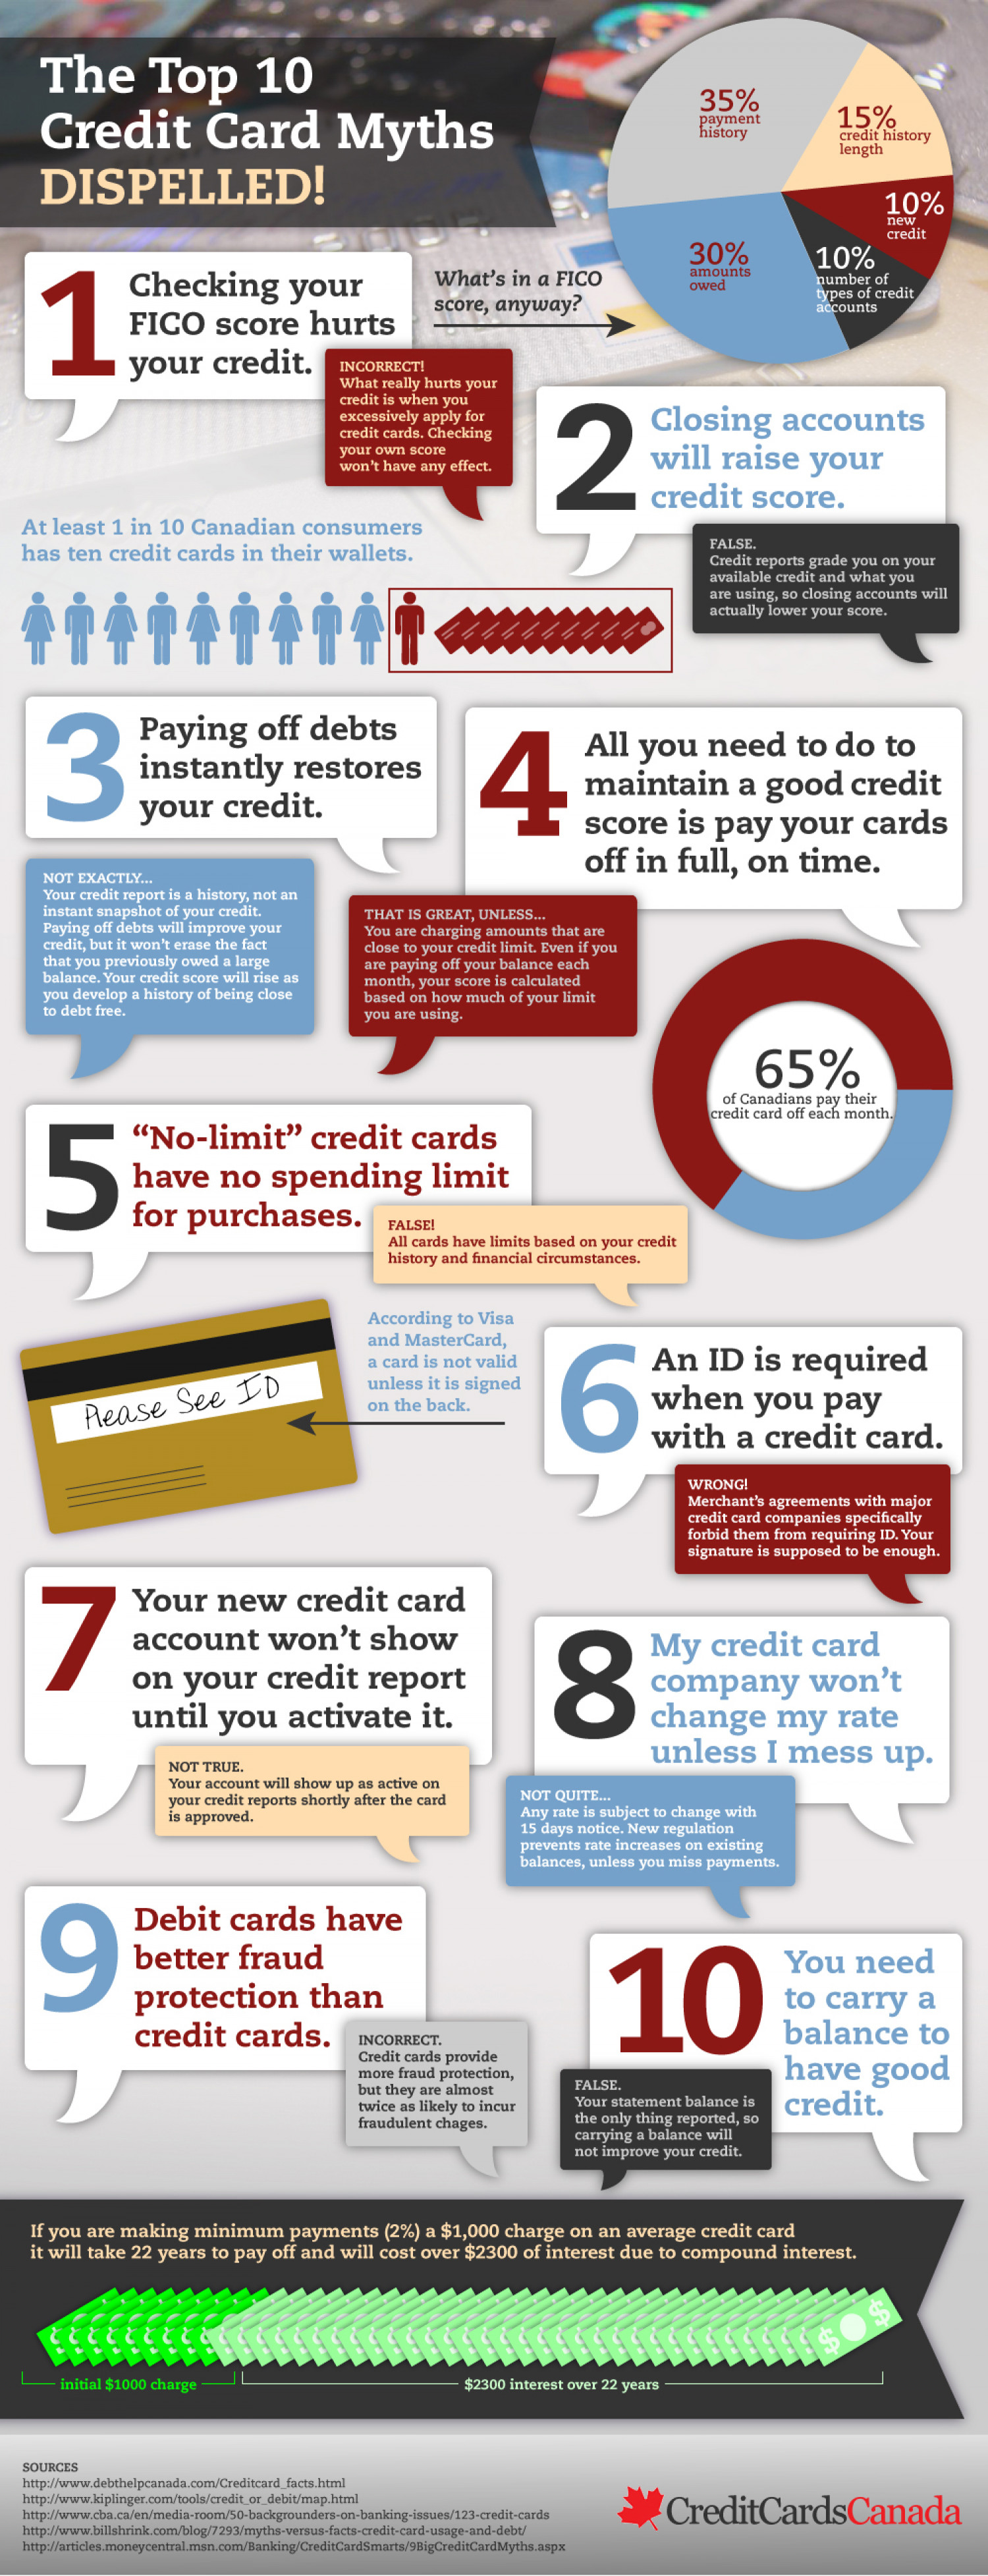 Top 10 Canadian Credit Card Myths Dispelled Infographic